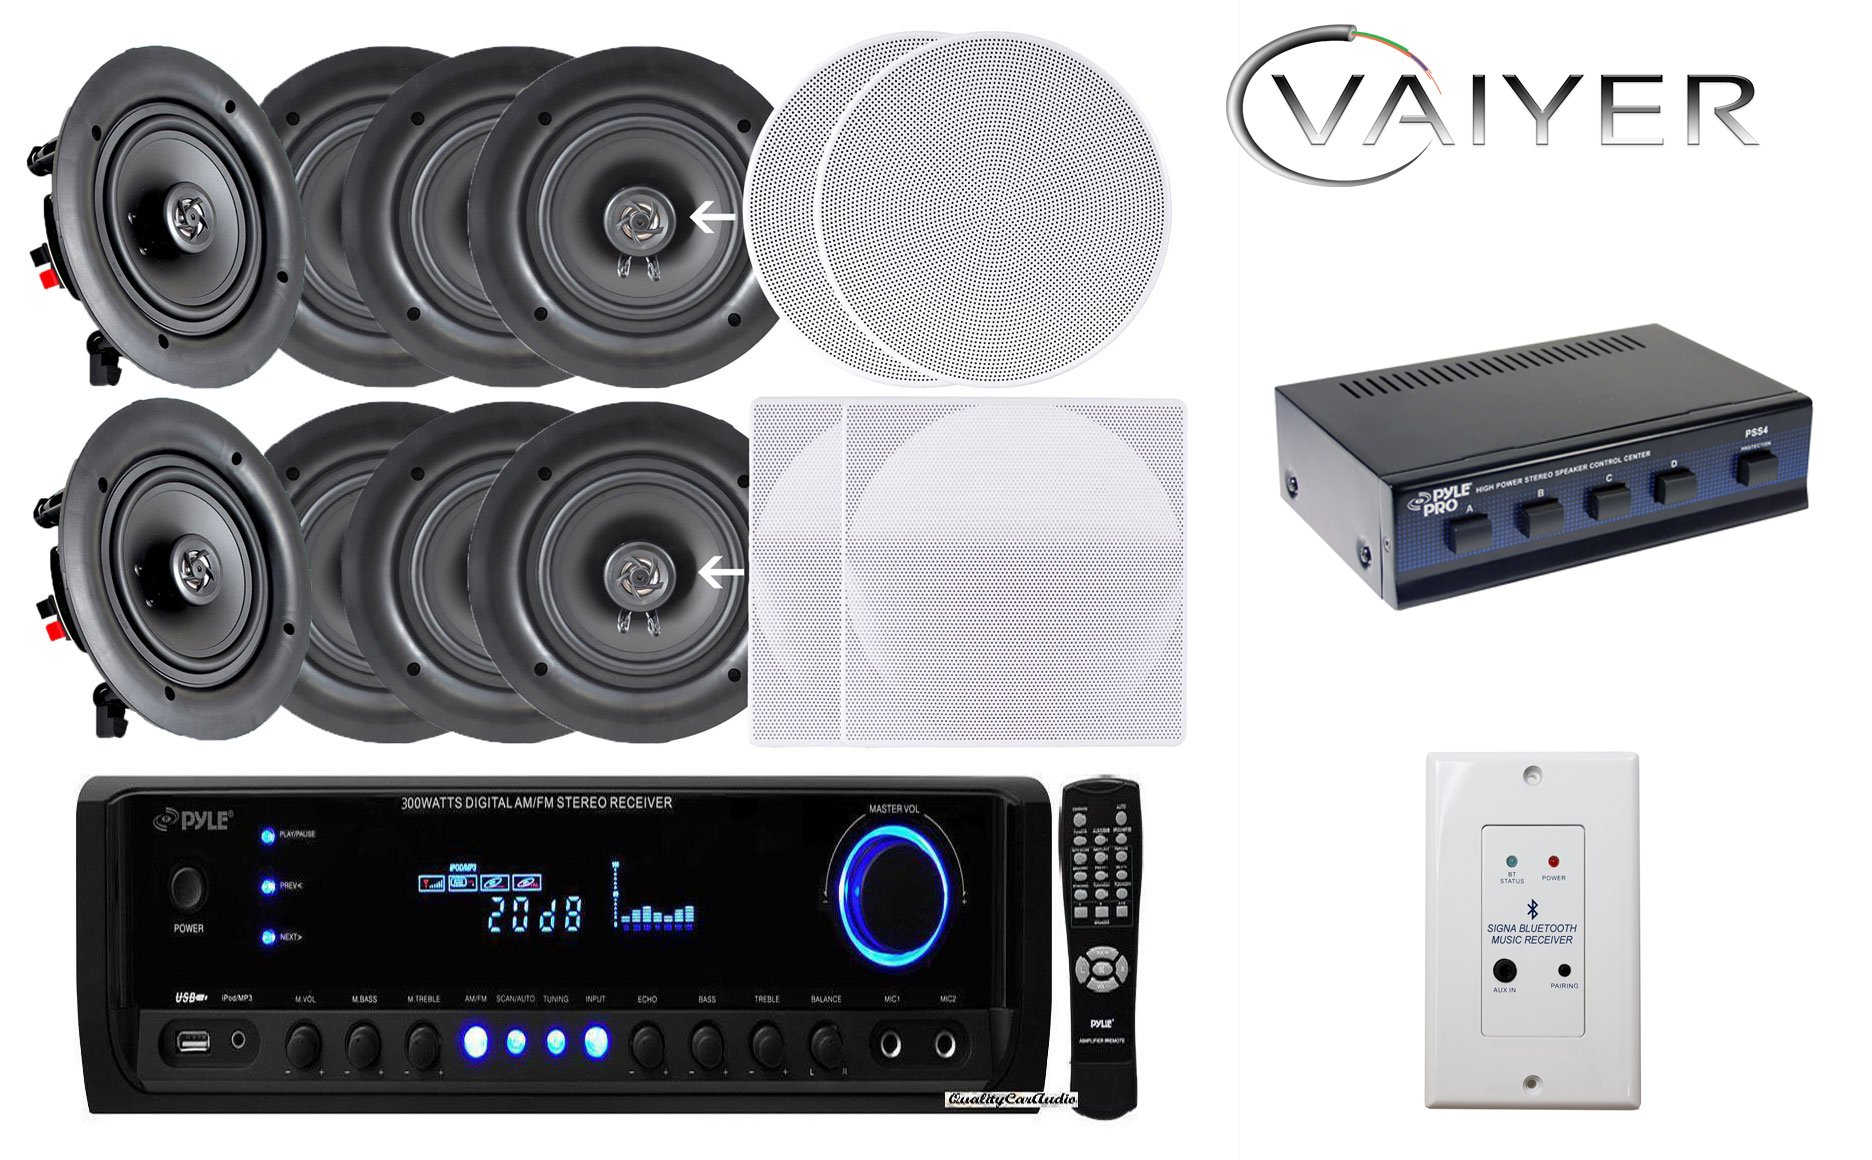 Vaiyerkits Home Audio Package - Includes: (8) 150W 5.25'' in-Wall/in-Ceiling White Speakers (1) 300W Digital Stereo Receiver (1) Remote (1) 4 Channel Speaker Selector & (1) in-Wall Bluetooth Receiver